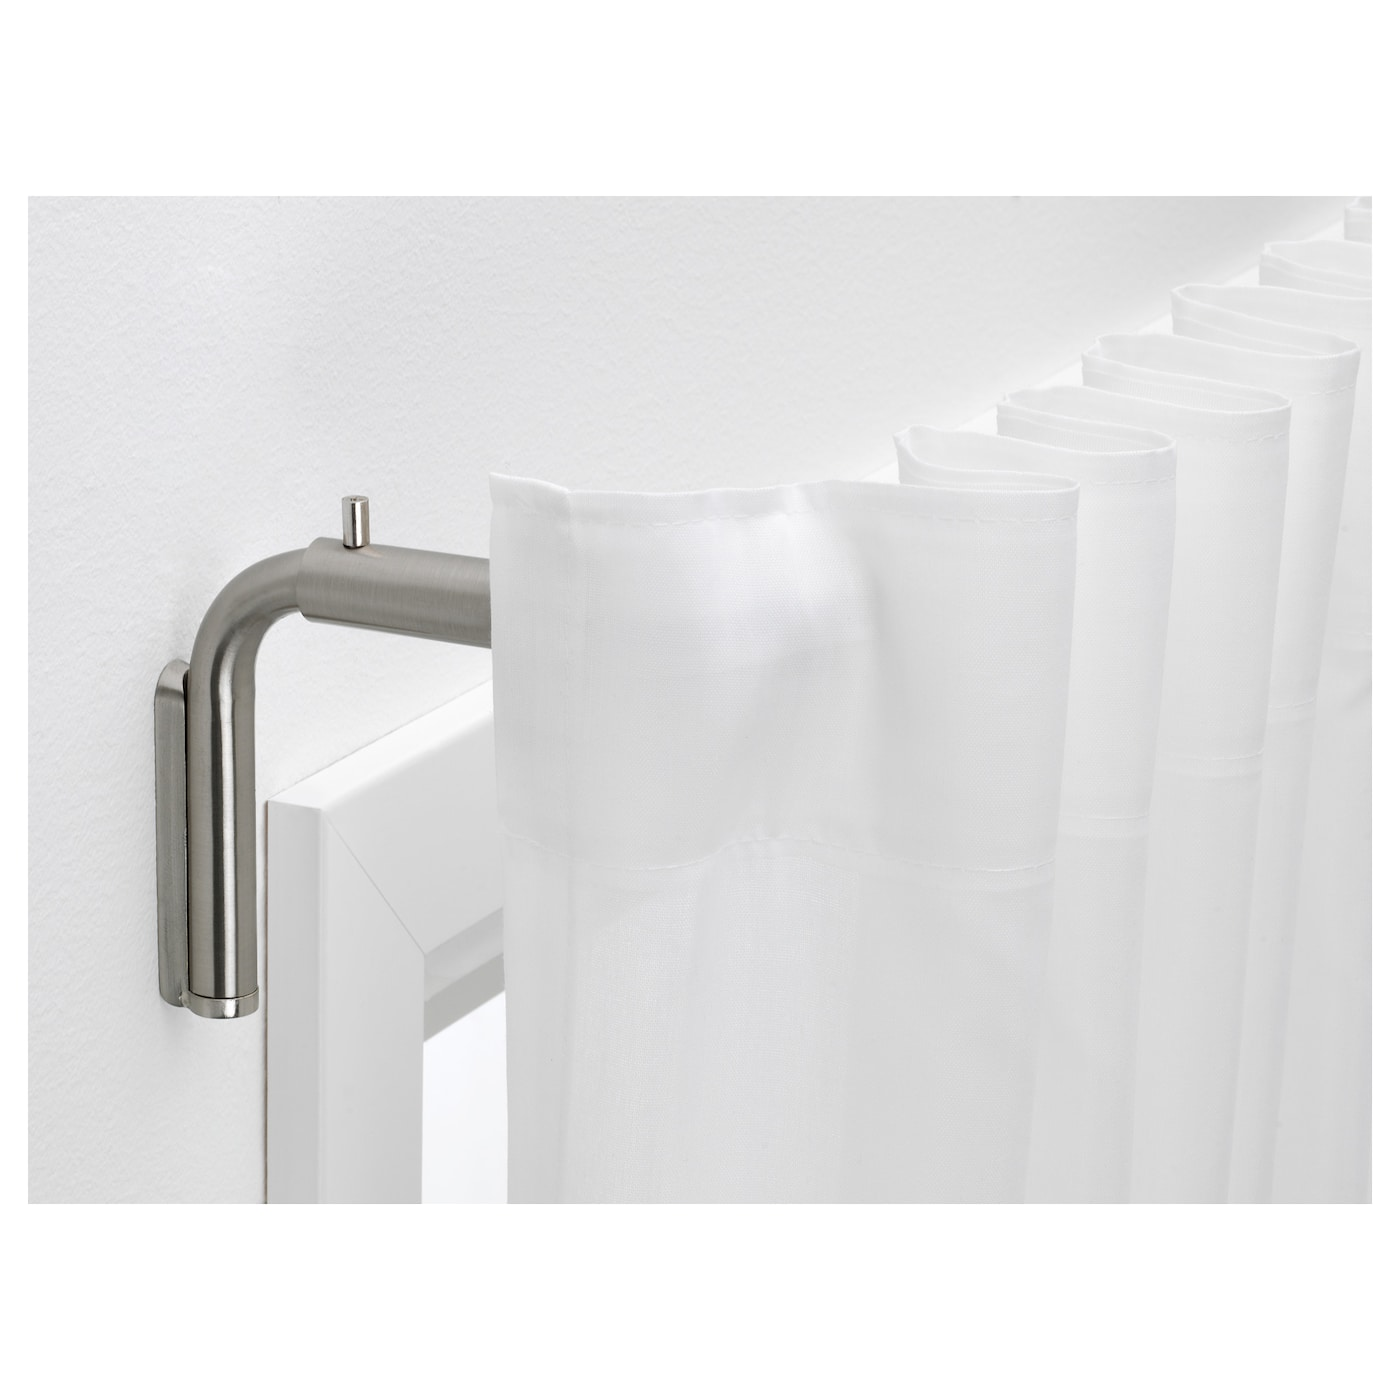 wide fresh inspirational curtains curtain of rod rods inch clear beautiful